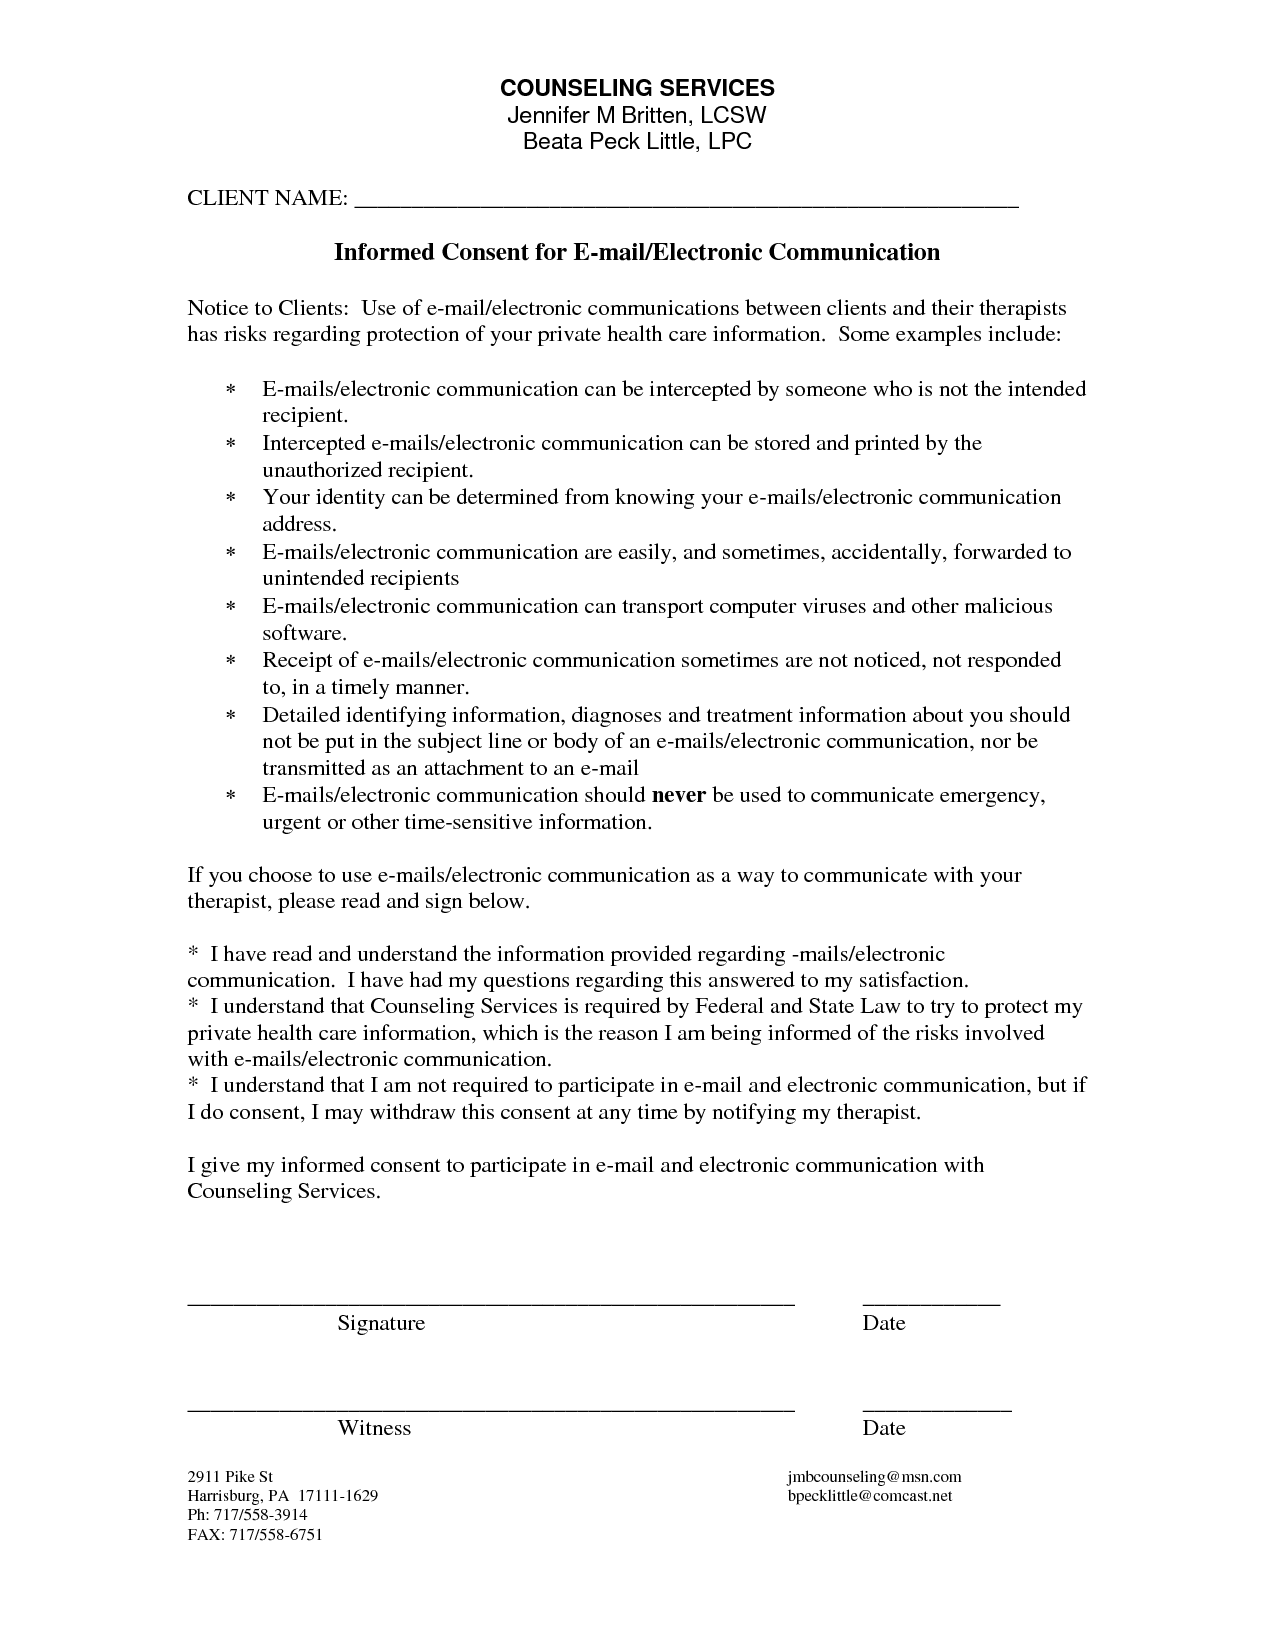 how to write a informed consent form